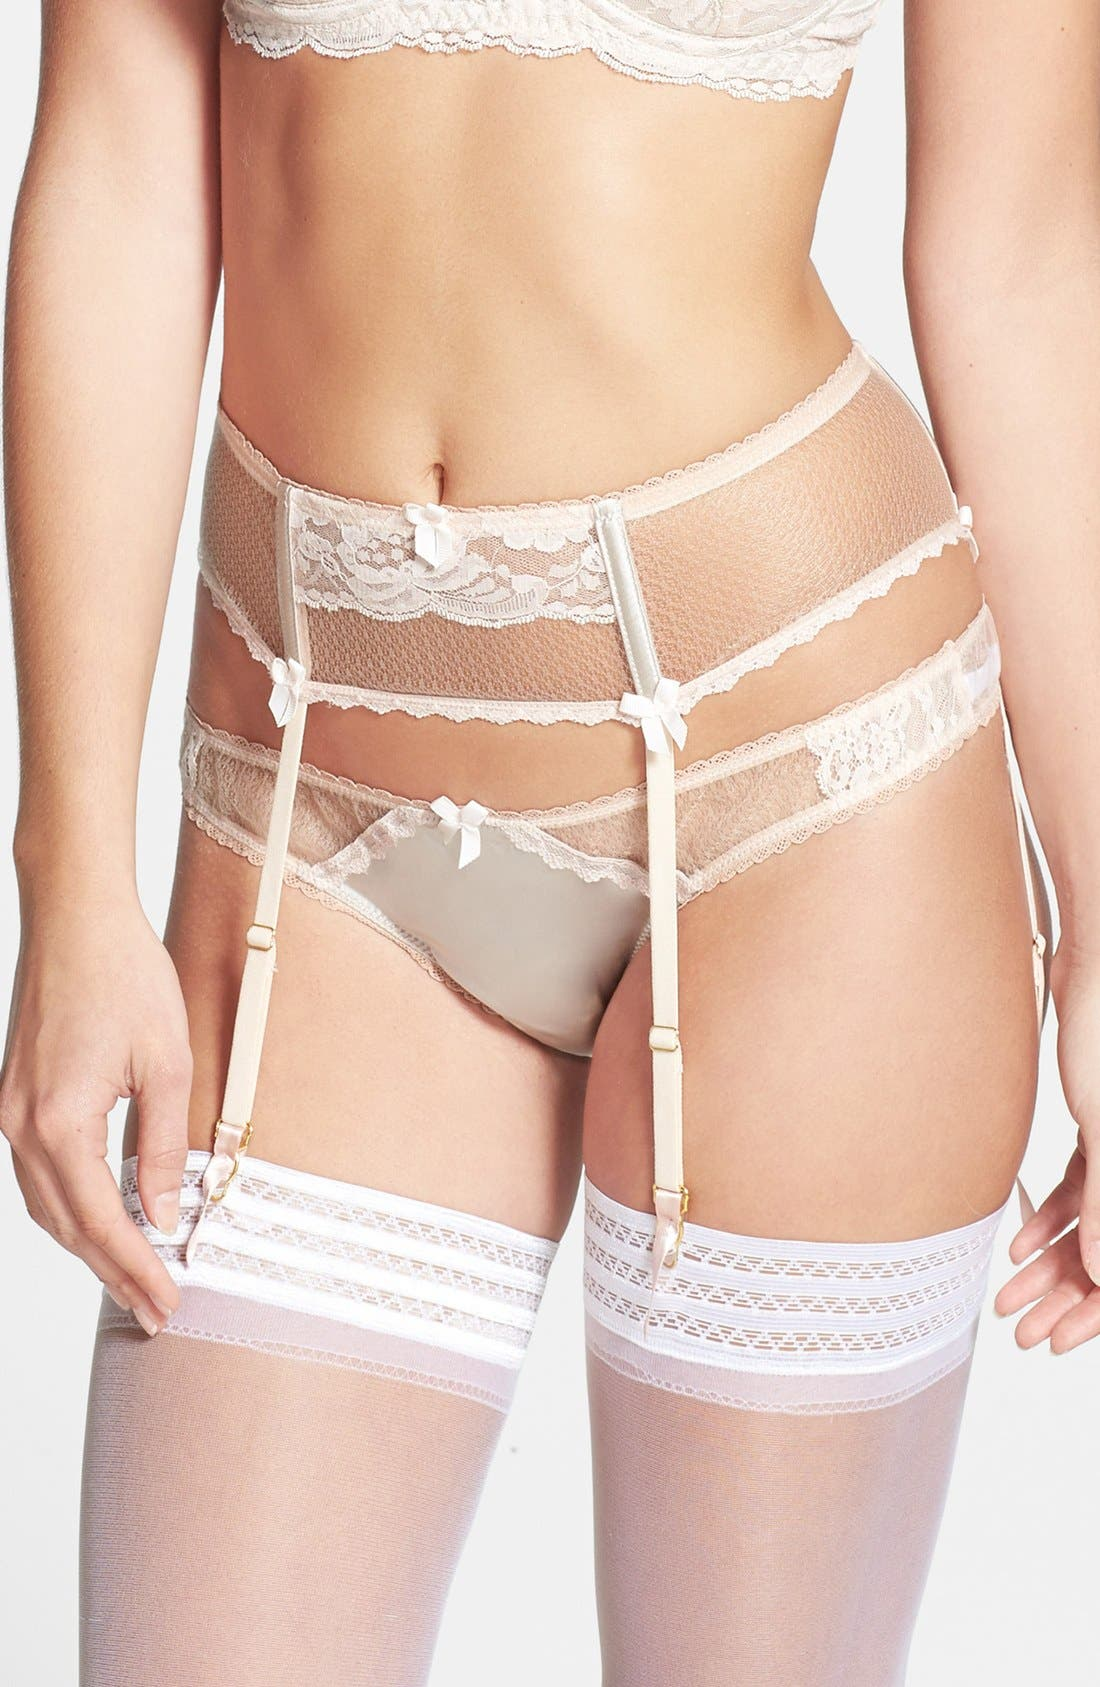 Main Image - Mimi Holliday 'Sticky Toffee Pudding' Garter Belt